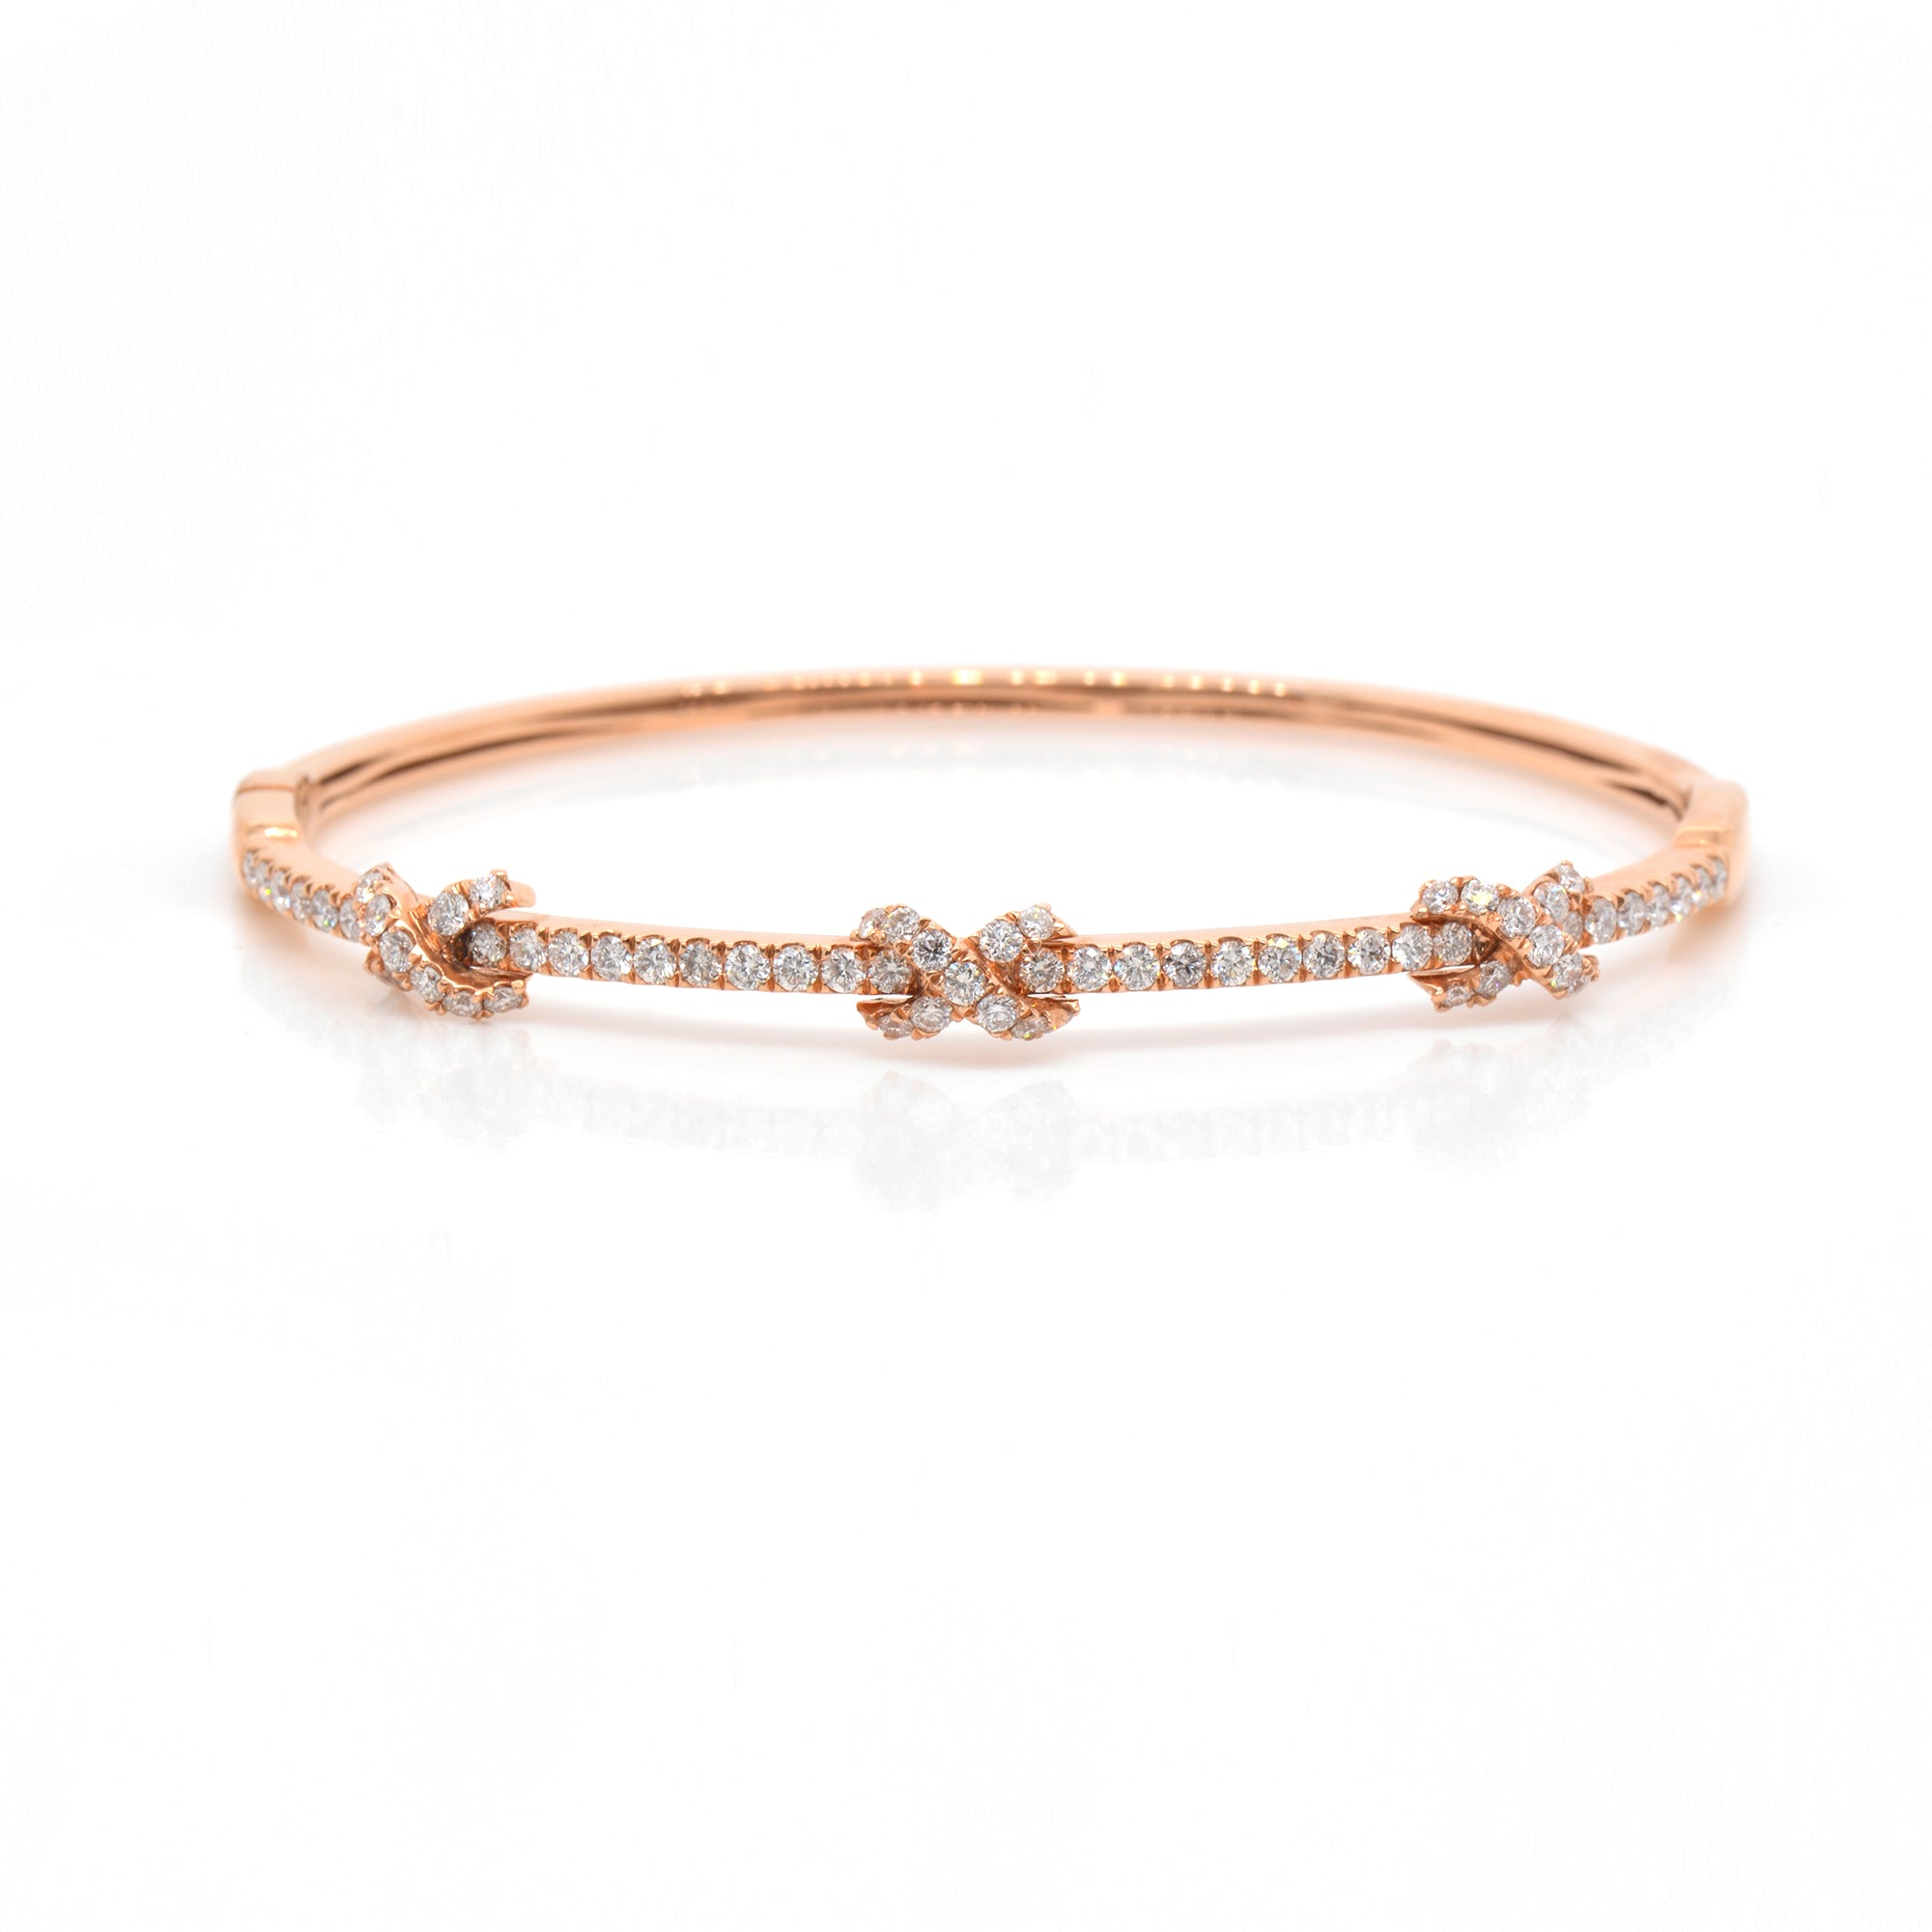 18K Rose Gold Diamond Infinity Bangle